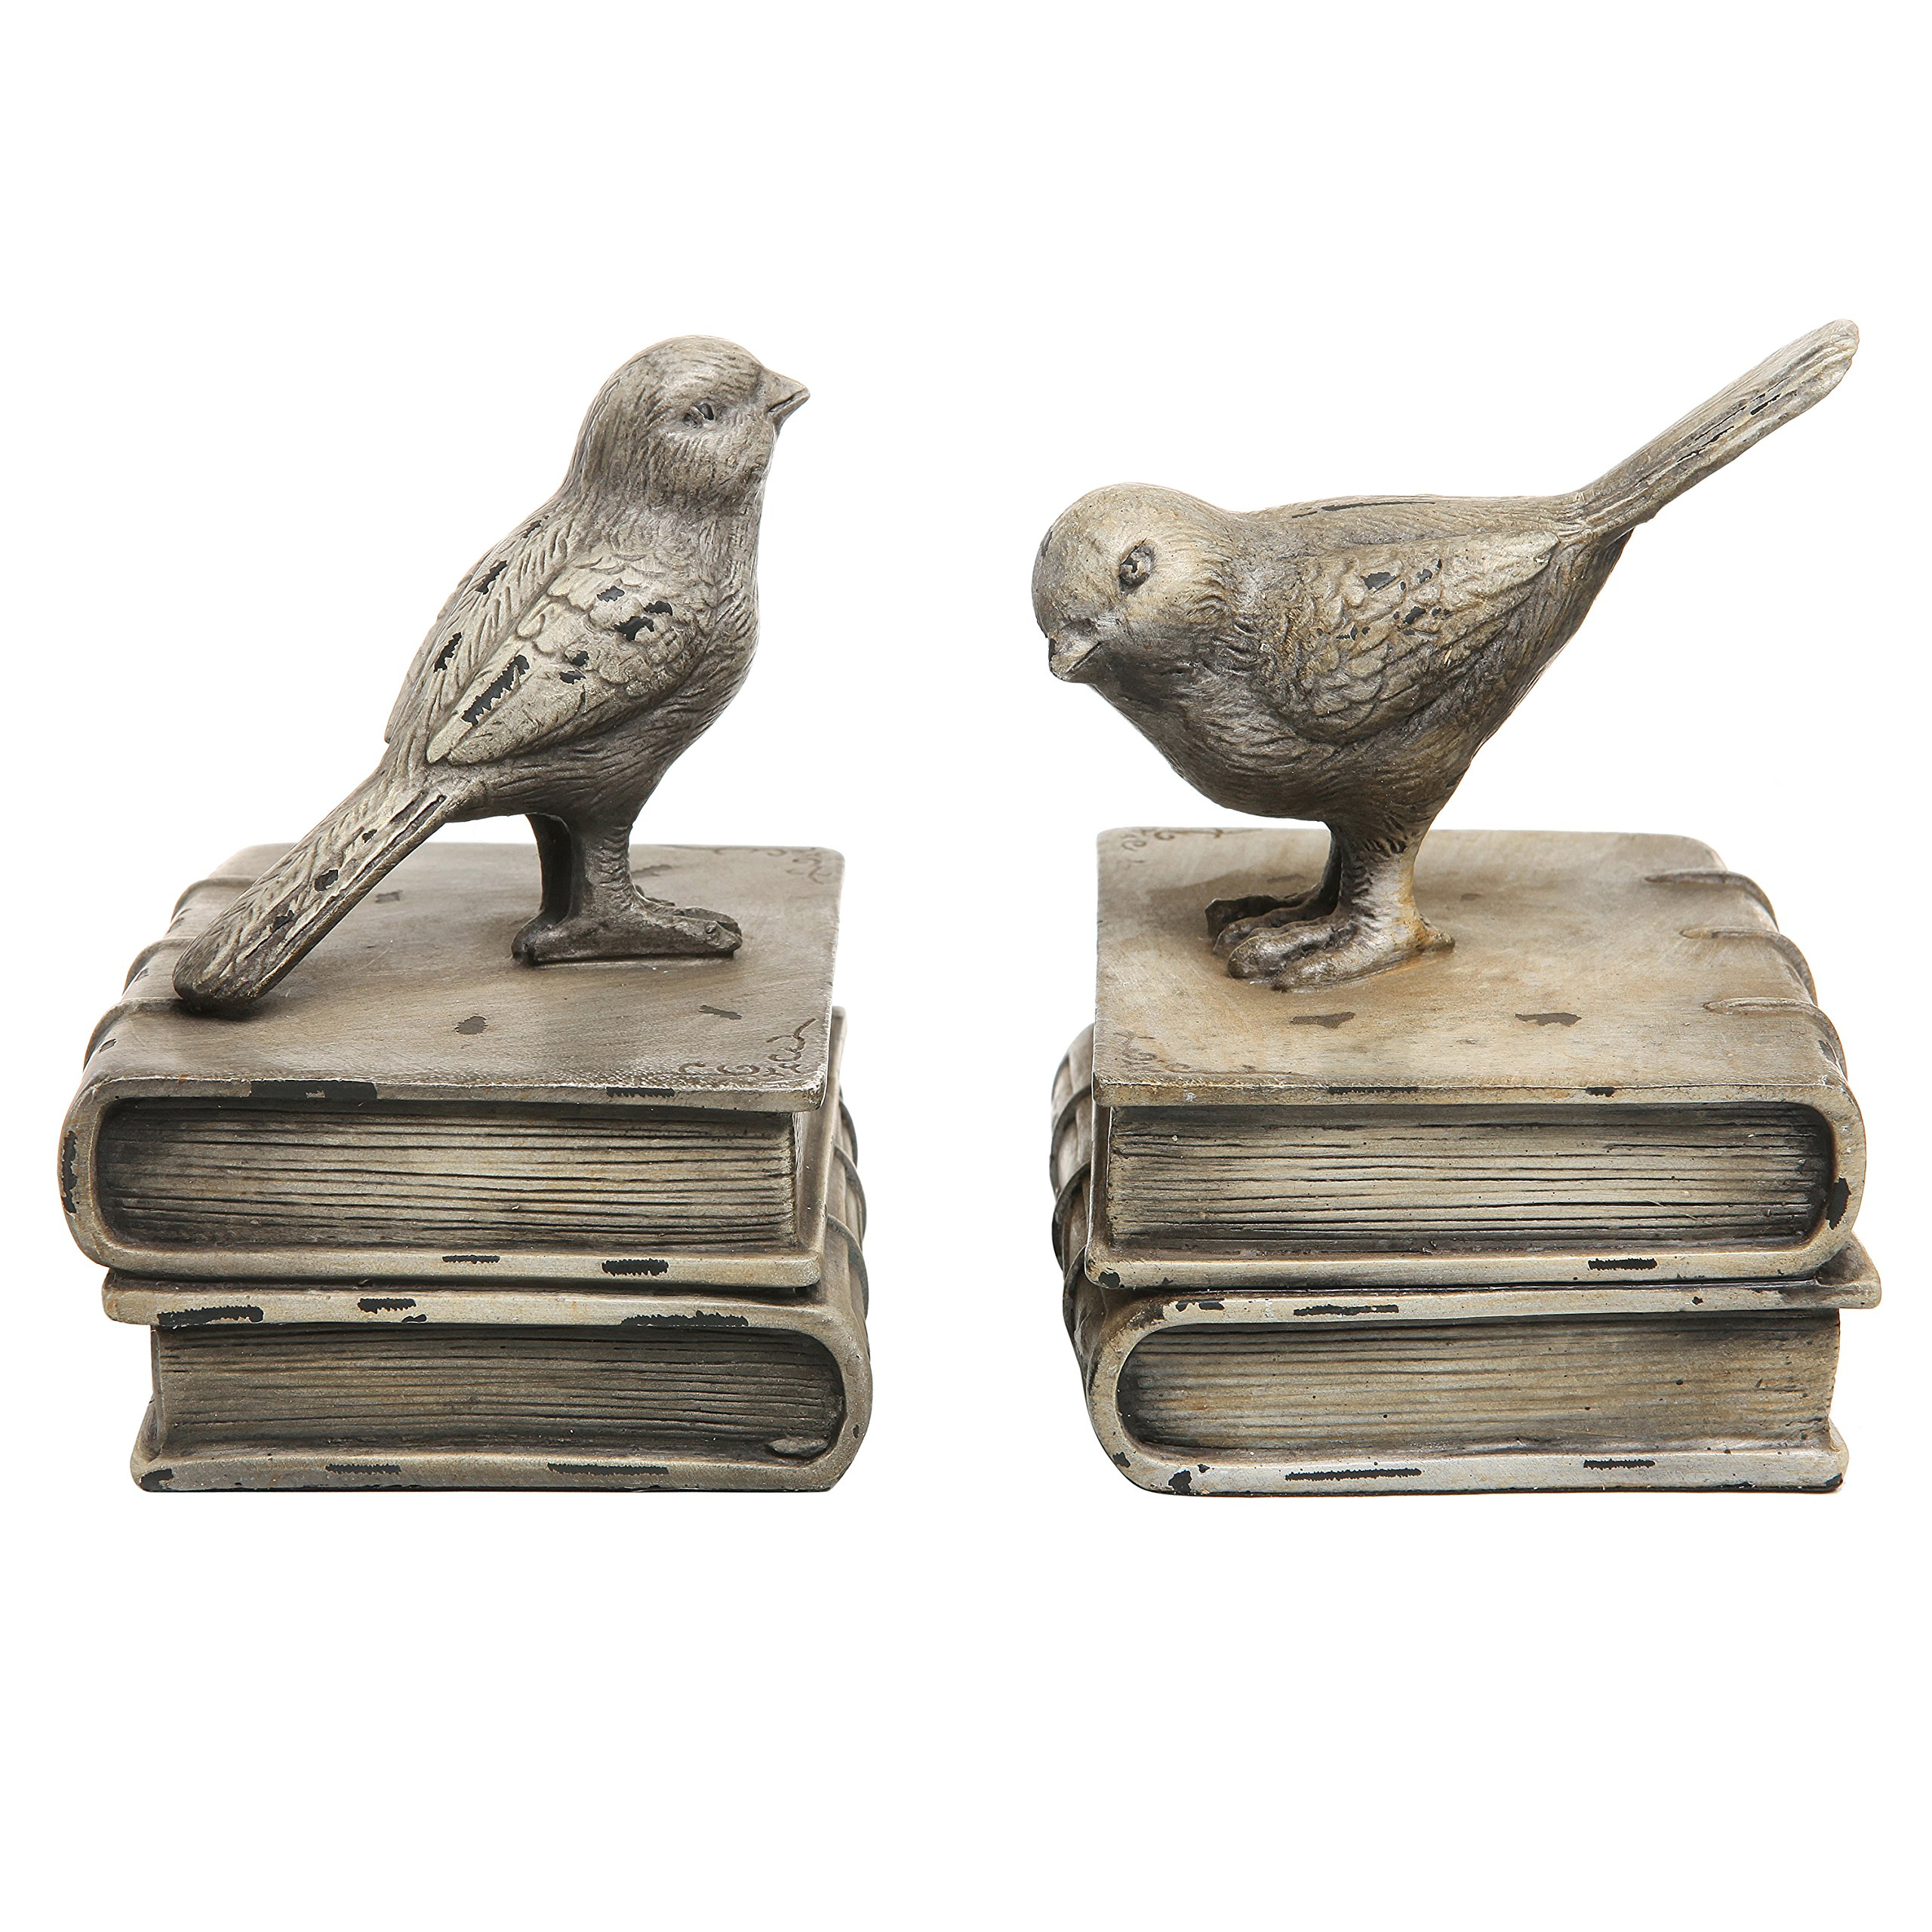 MyGift Vintage Style Decorative Birds & Books Design Ceramic Bookshelf Bookends/Paper Weights Home by MyGift